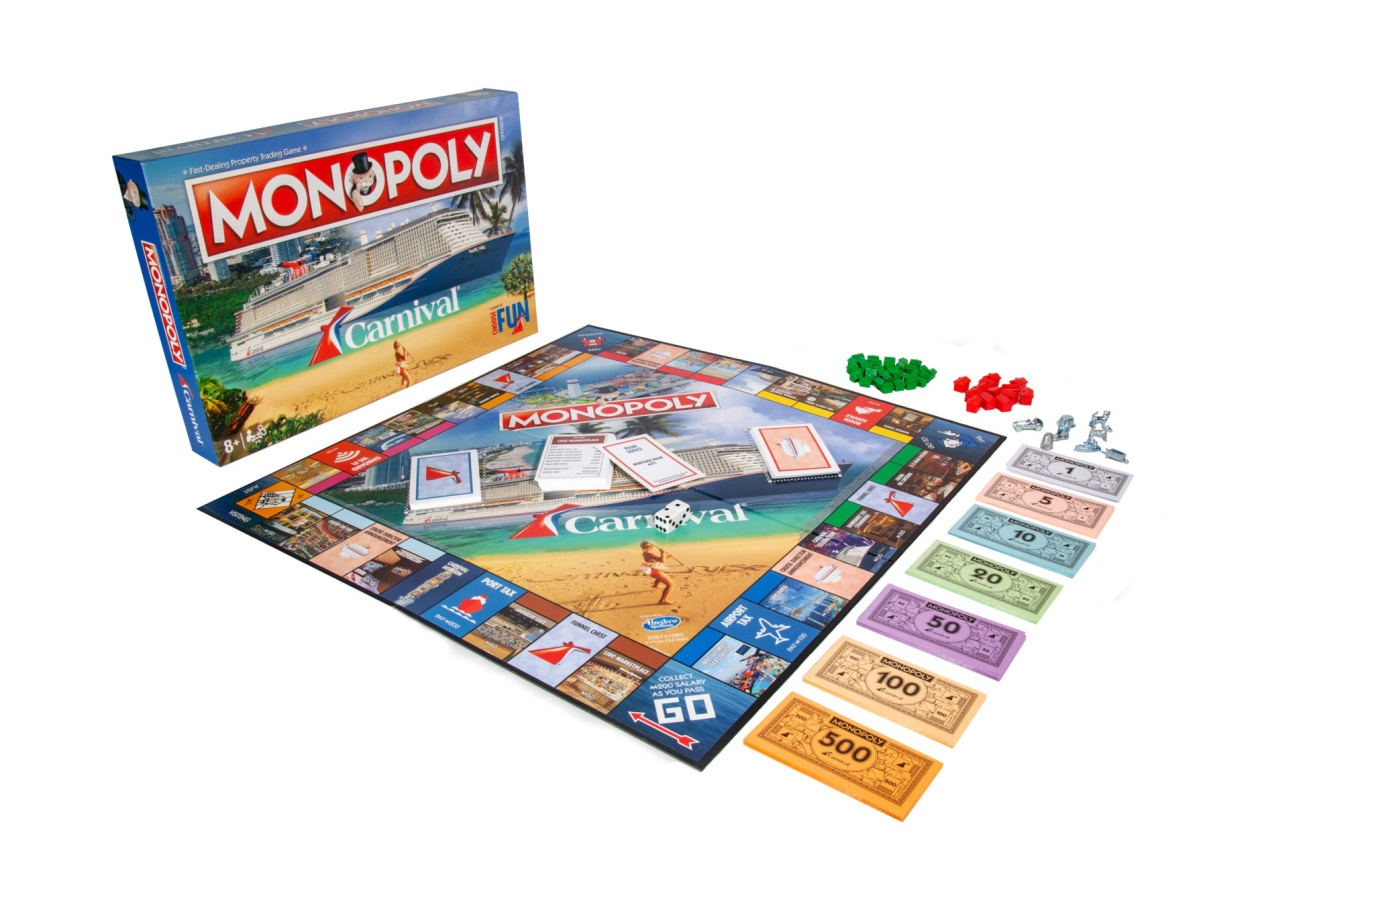 carnival cruise line monopoly